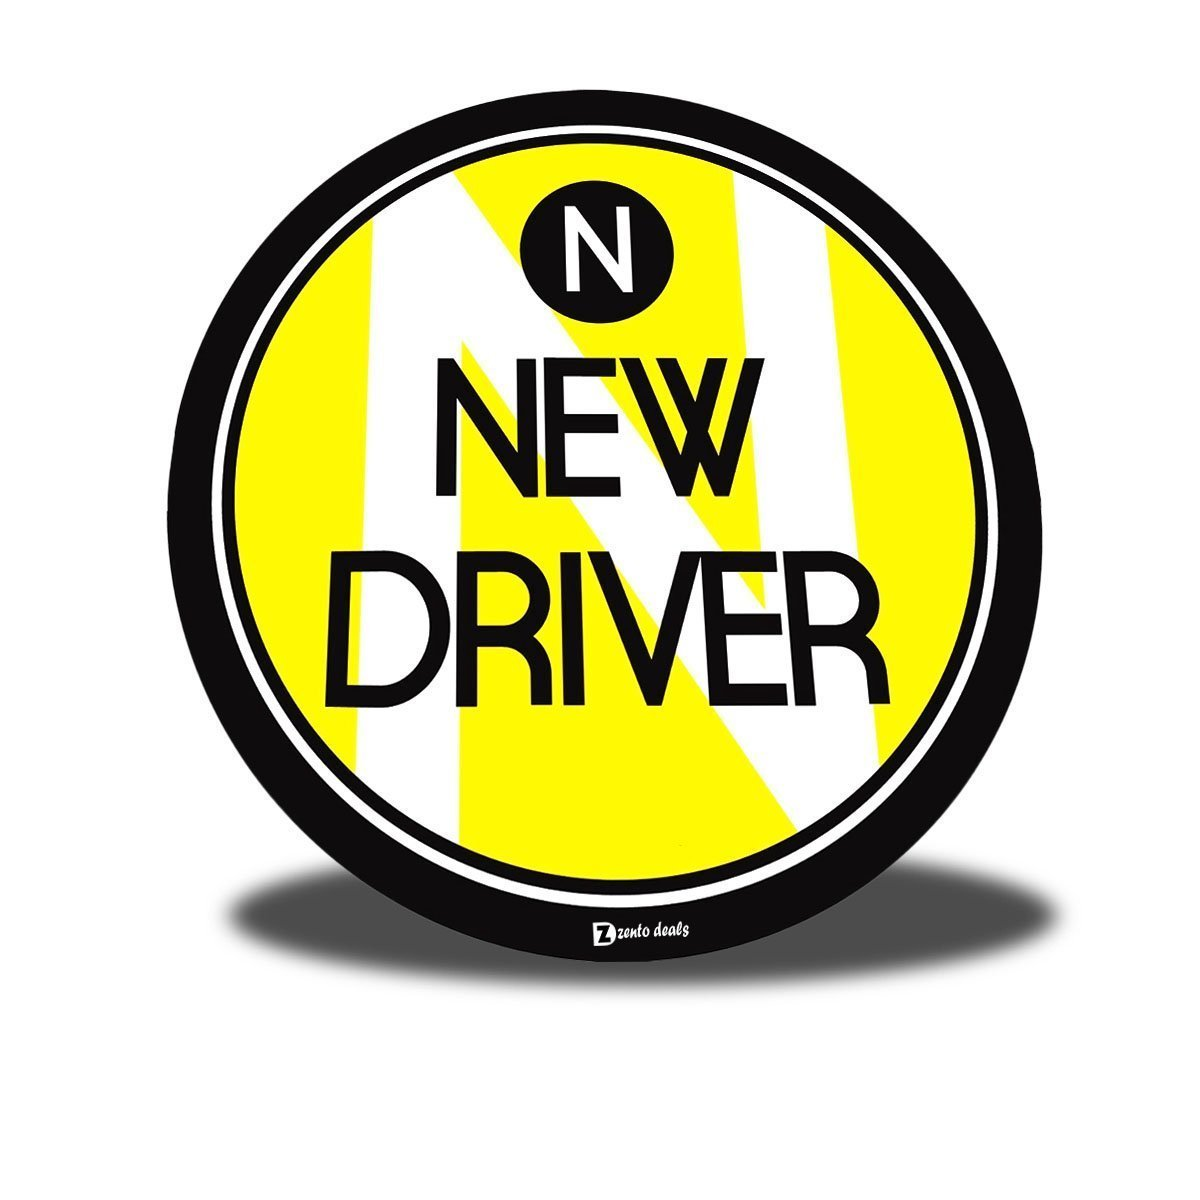 A Must Have for All New Registered Drivers for a Safer Trip Zento Deals New Driver Vehicle Round Magnet Sign